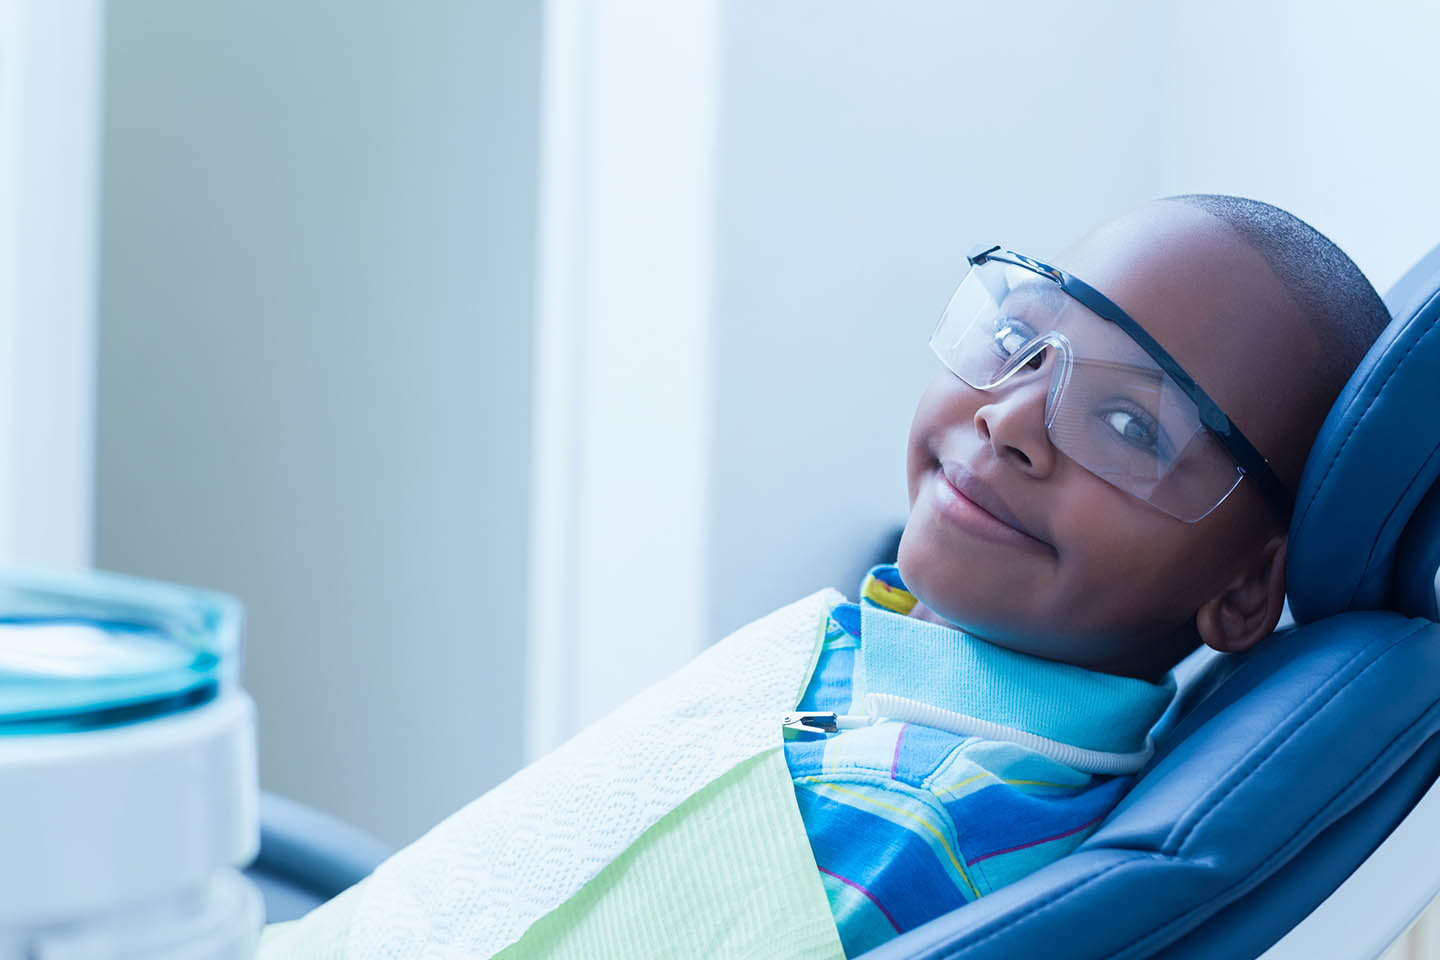 Child in dental chair with goggles on